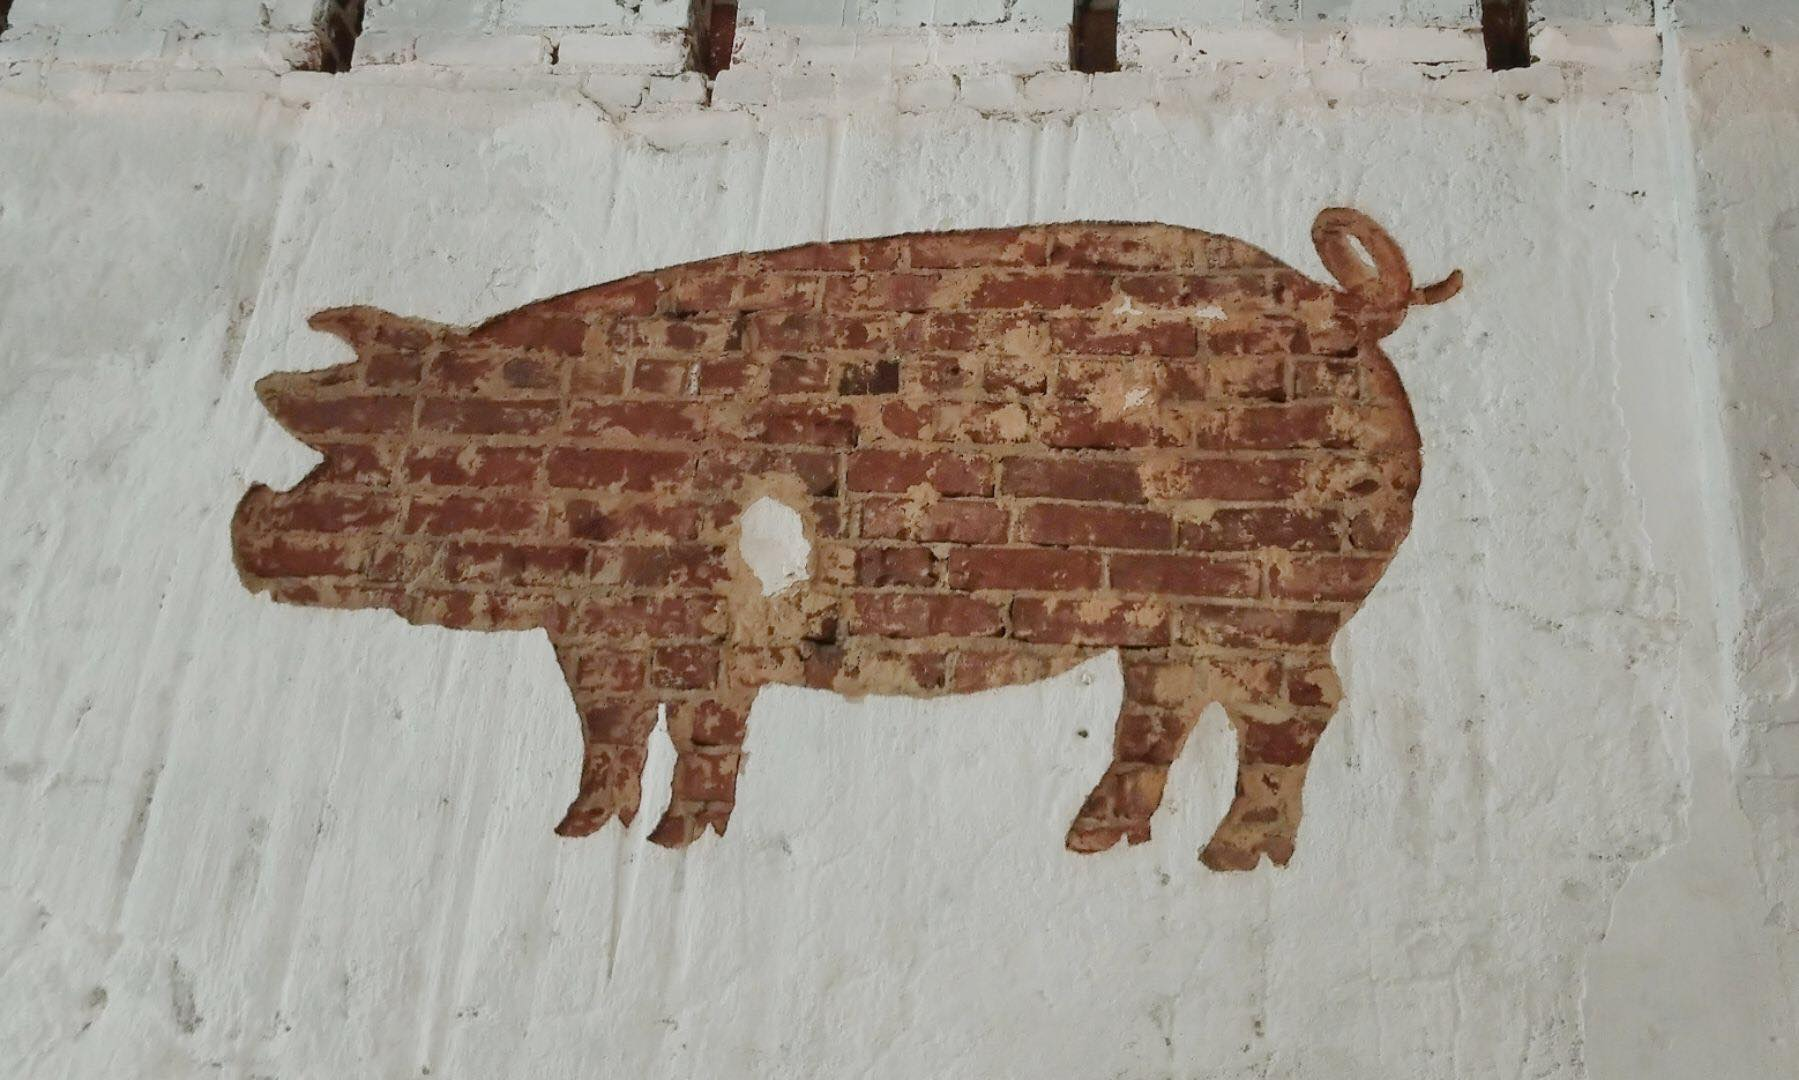 Chop Shop butchery and market opens in Edgewood